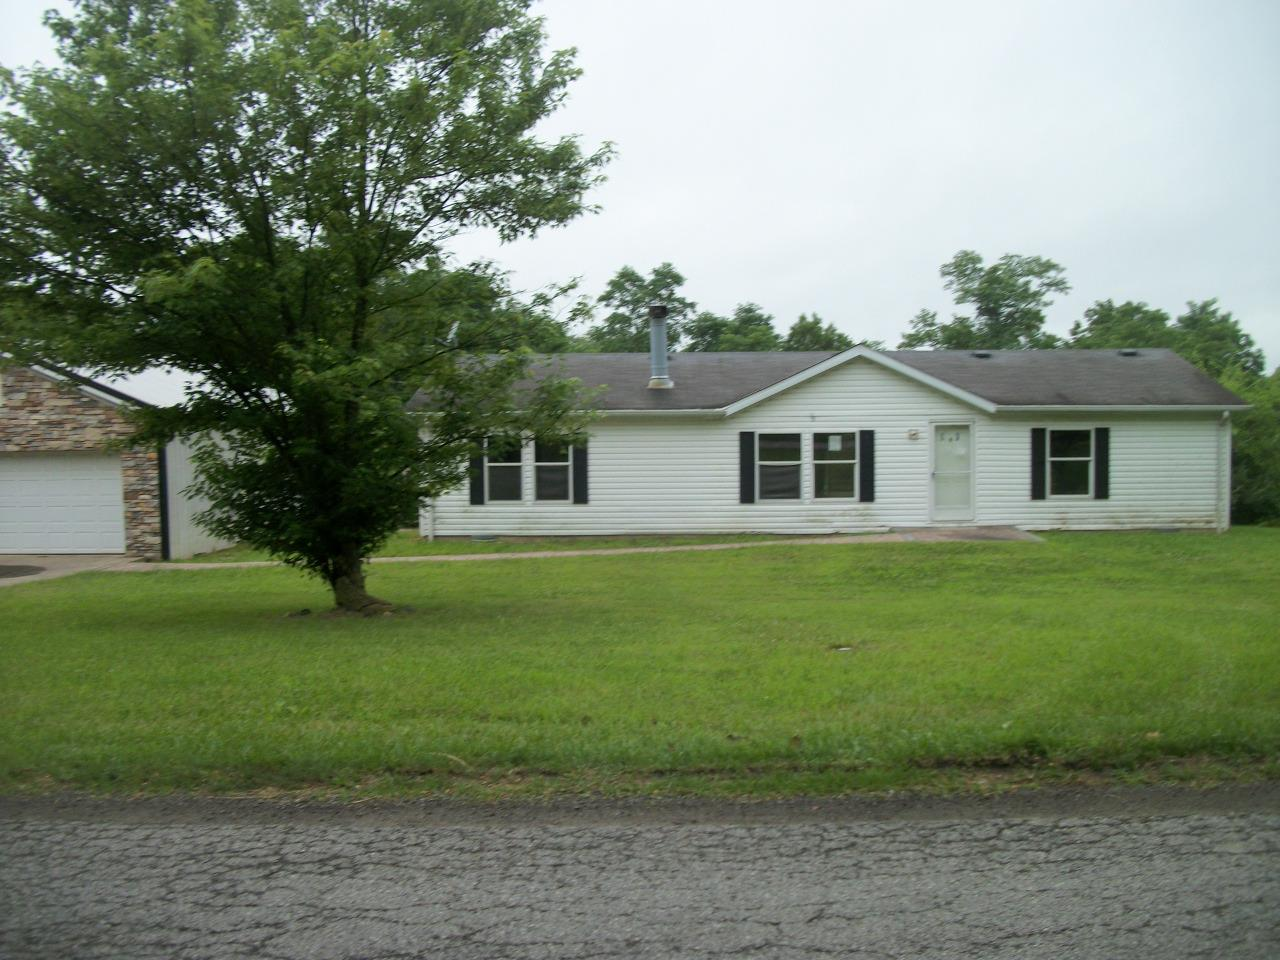 Photo 1 for 233 Vallandingham Rd Dry Ridge, KY 41035